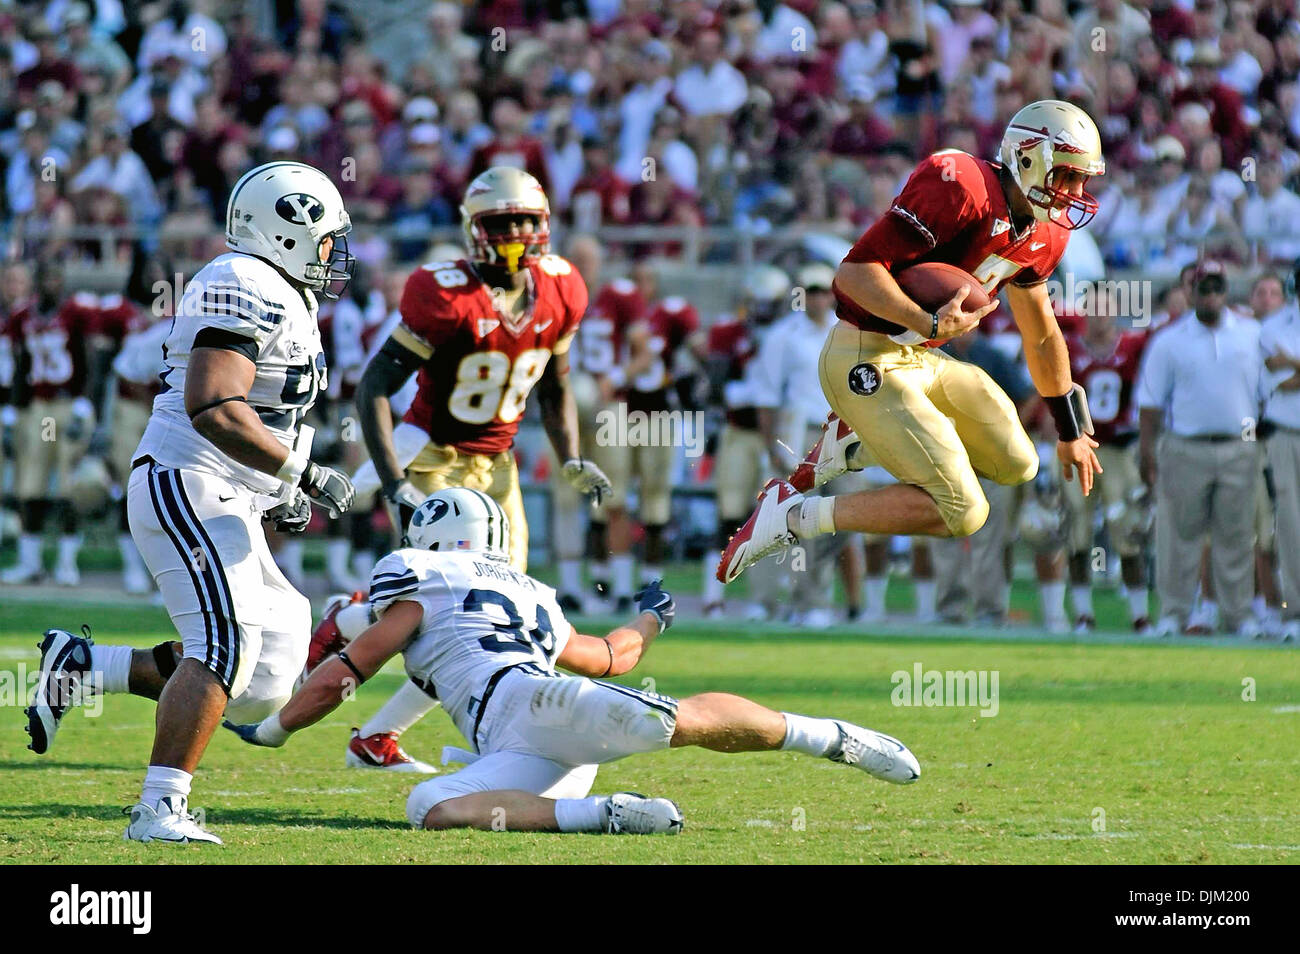 Sept. 18, 2010 - Tallahassee, Florida, United States of America - September 18, 2010: FSU QB Christian Ponder (7) leaps over a would be tackle by BYU LB Austen Jorgensen (34) as he scrambles for an FSU first down. FSU defeated BYU 34-10 at Doak Campbell Stadium in Tallahassee, Florida. (Credit Image: © Mike Olivella/ZUMApress.com) - Stock Image